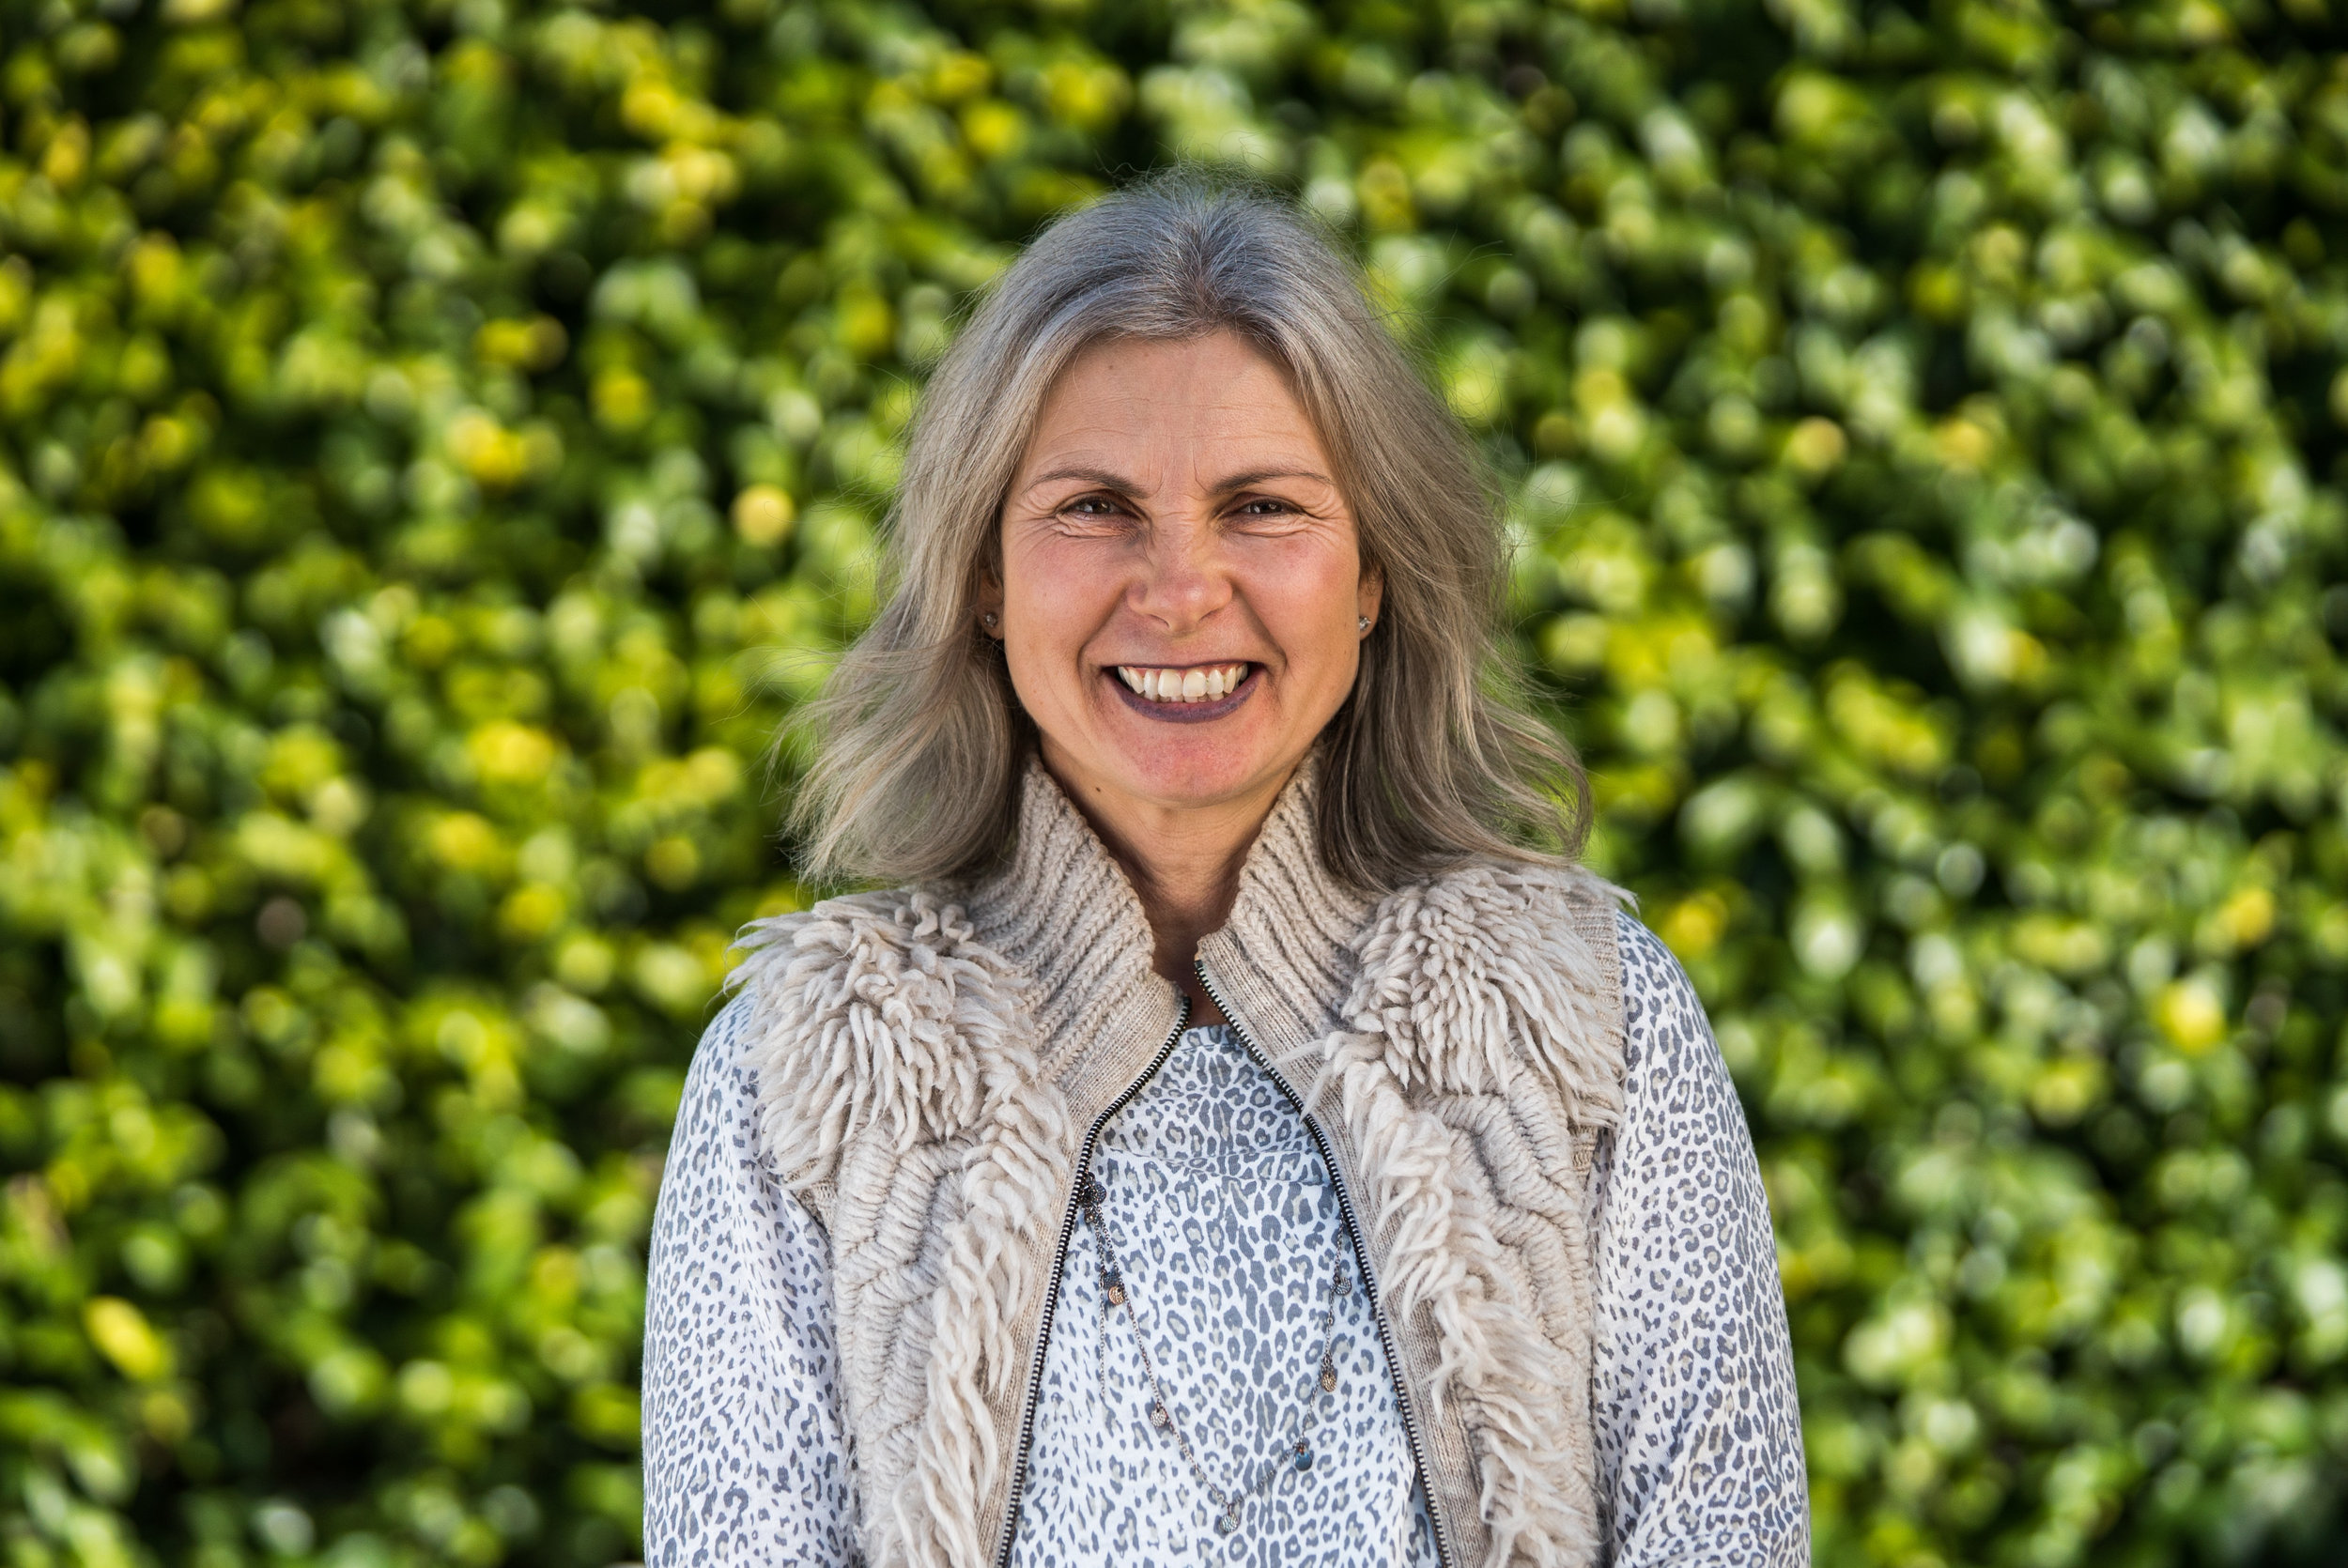 Cheryl Carmine    Researcher   A self proclaimed nosy parker, Cheryl is great at getting to the heart of a story. A genuine interest in people places her well to connect with talent and deliver solid briefs through to our producers and directors.